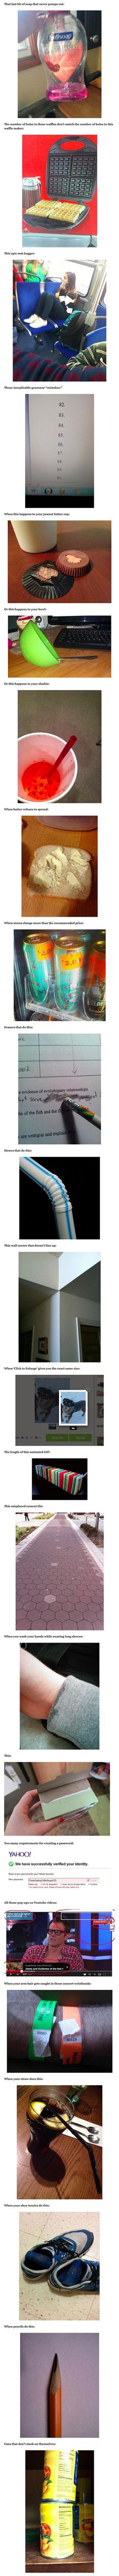 24 of the most mildly infuriating things ever.  I got very frustrated reading this.  That wall. I could NOT live in that house with that wall. No. NO.: